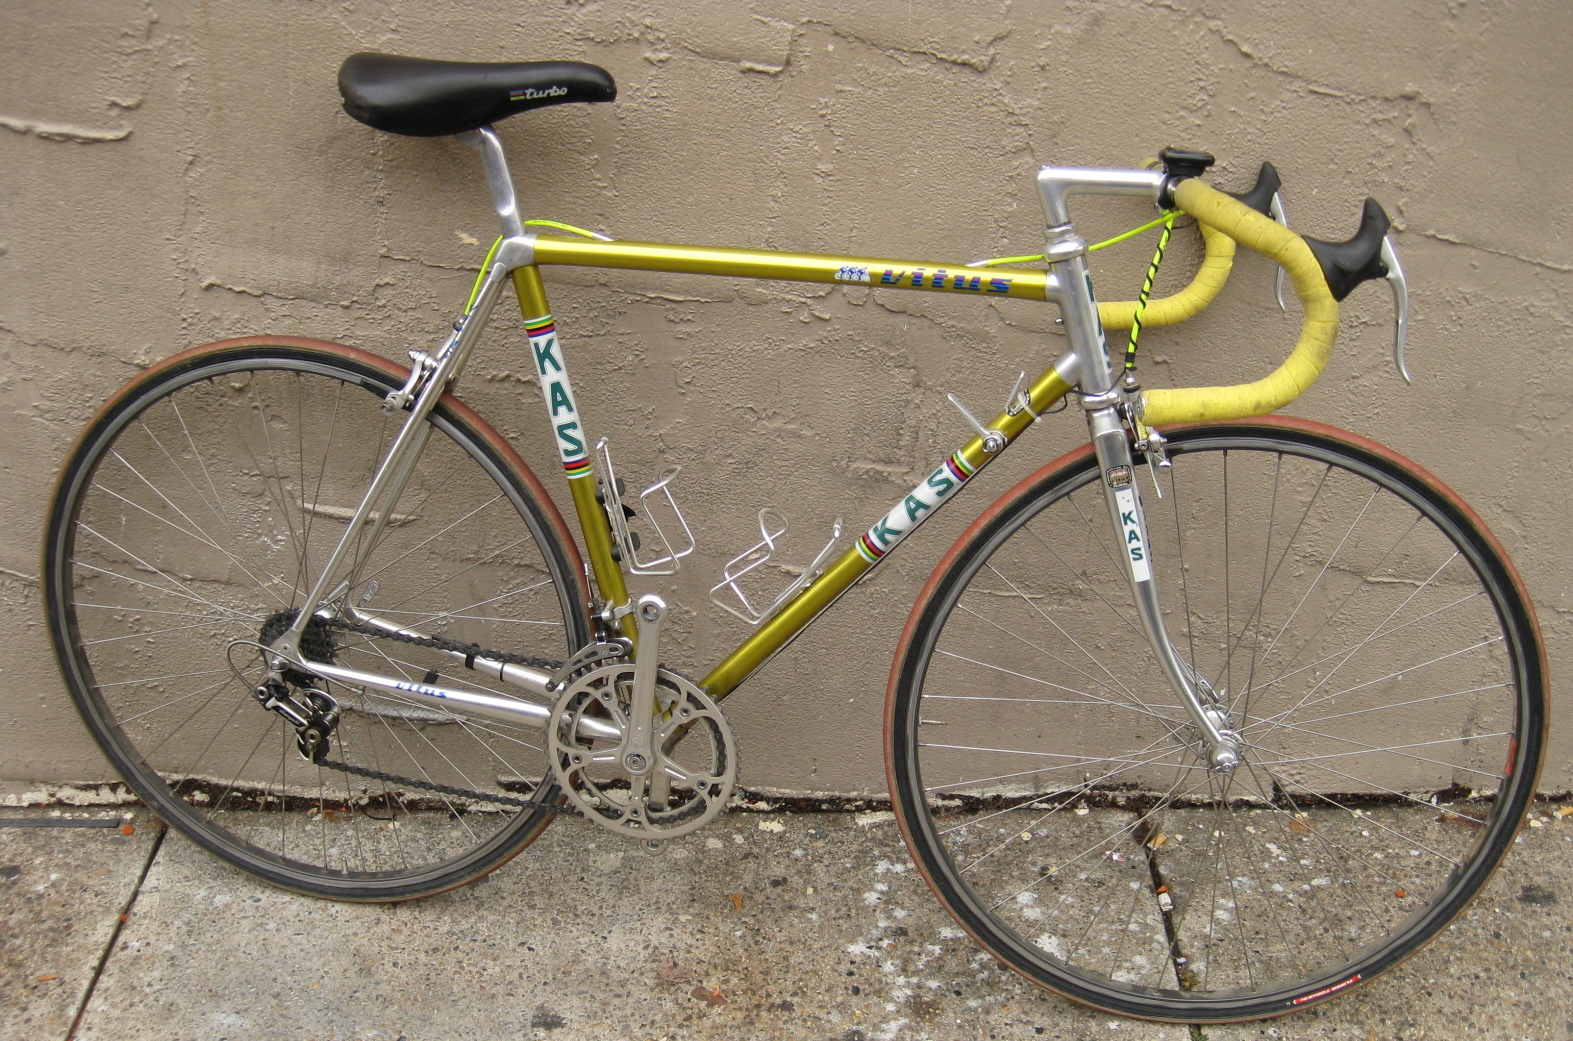 Bikeville thoughts: Sold 54cm KAS Vitus road bike